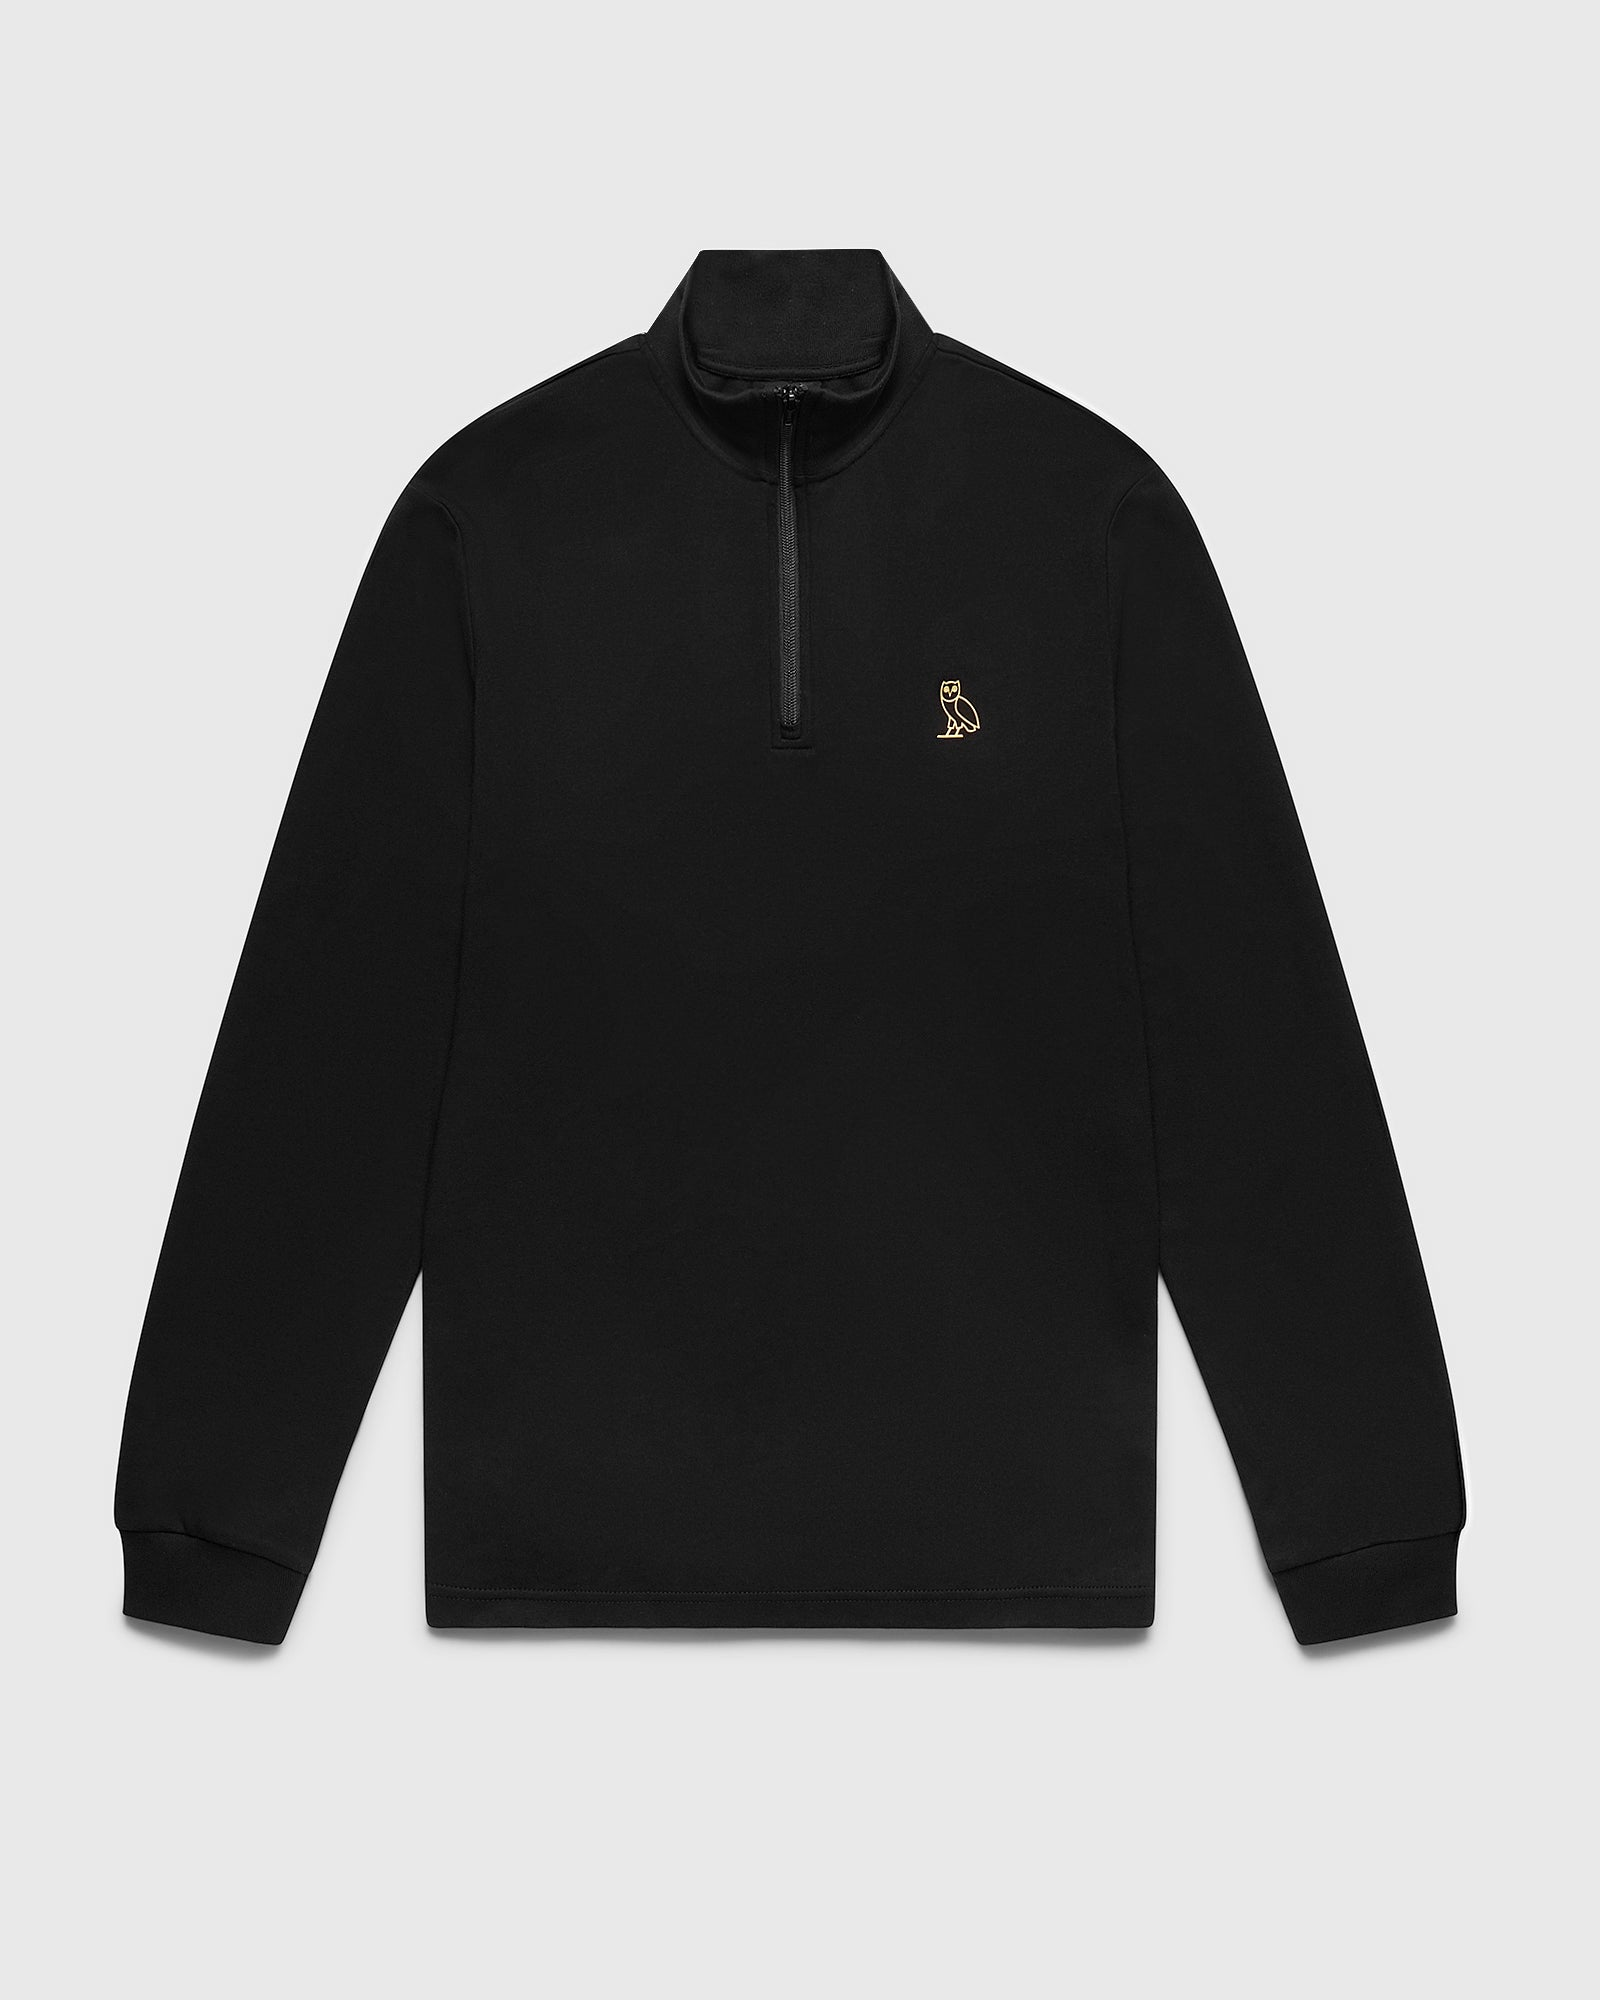 INTERLOCK 1/4 ZIP MOCK NECK - BLACK IMAGE #1